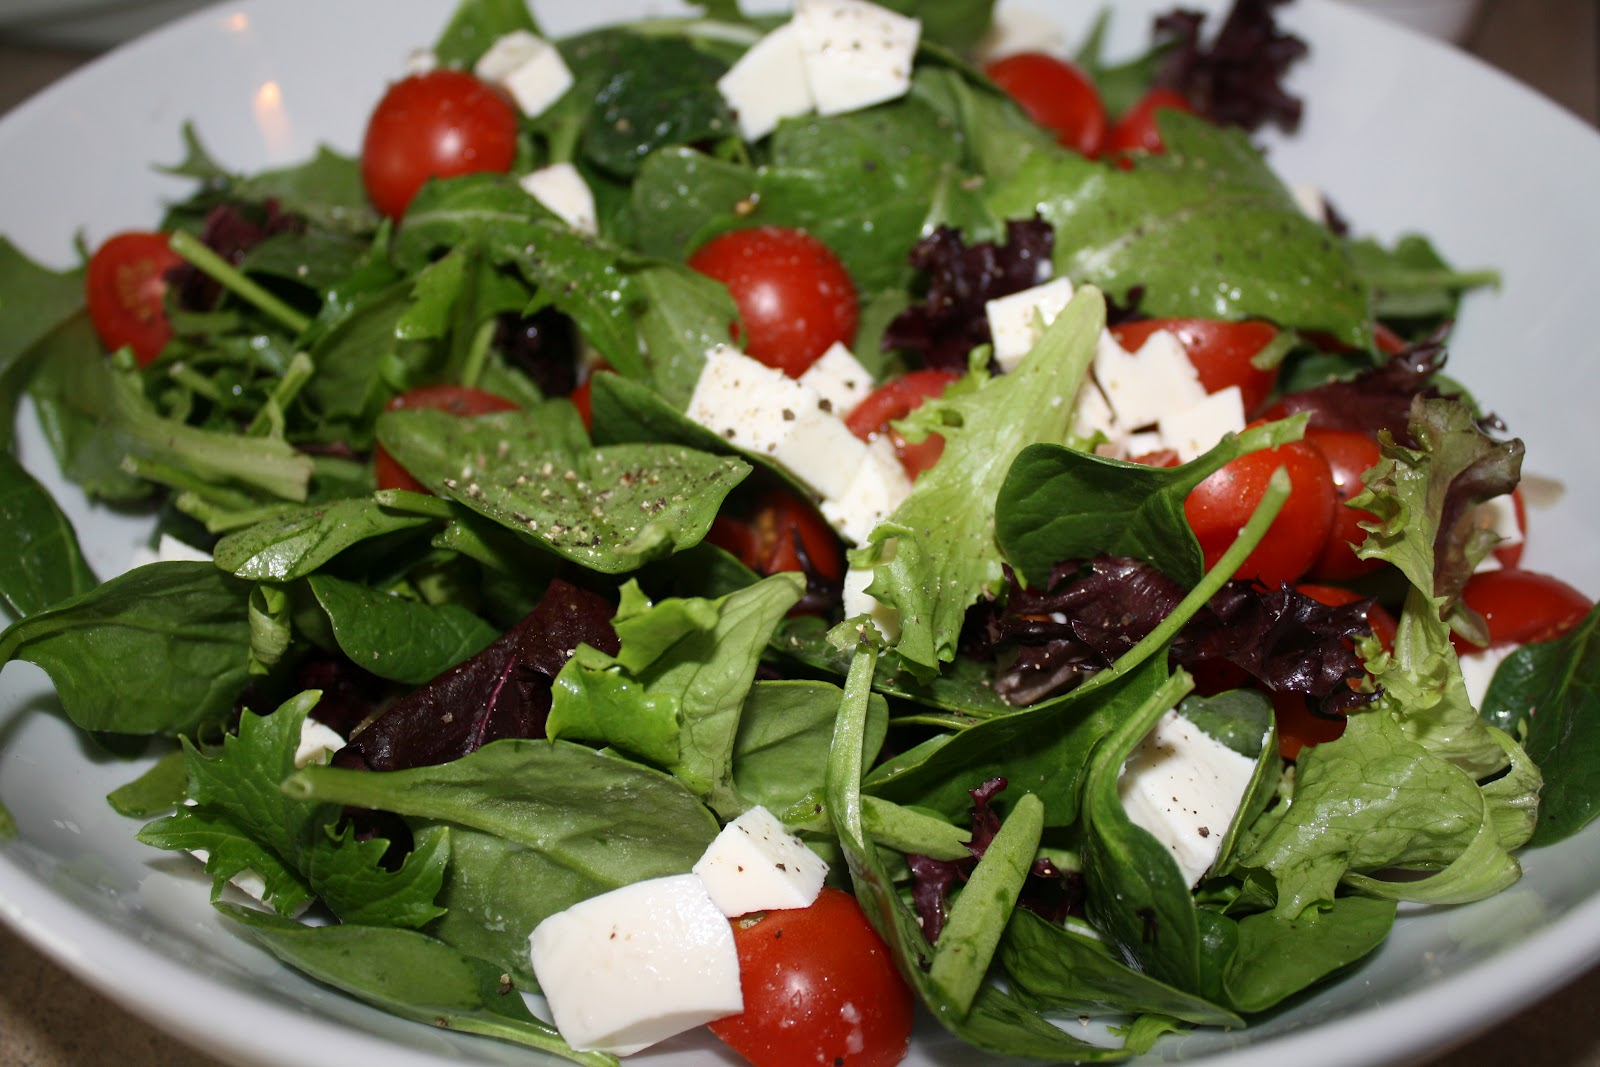 ... simple greens with tomatoes, mozzarella and basil-garlic dressing